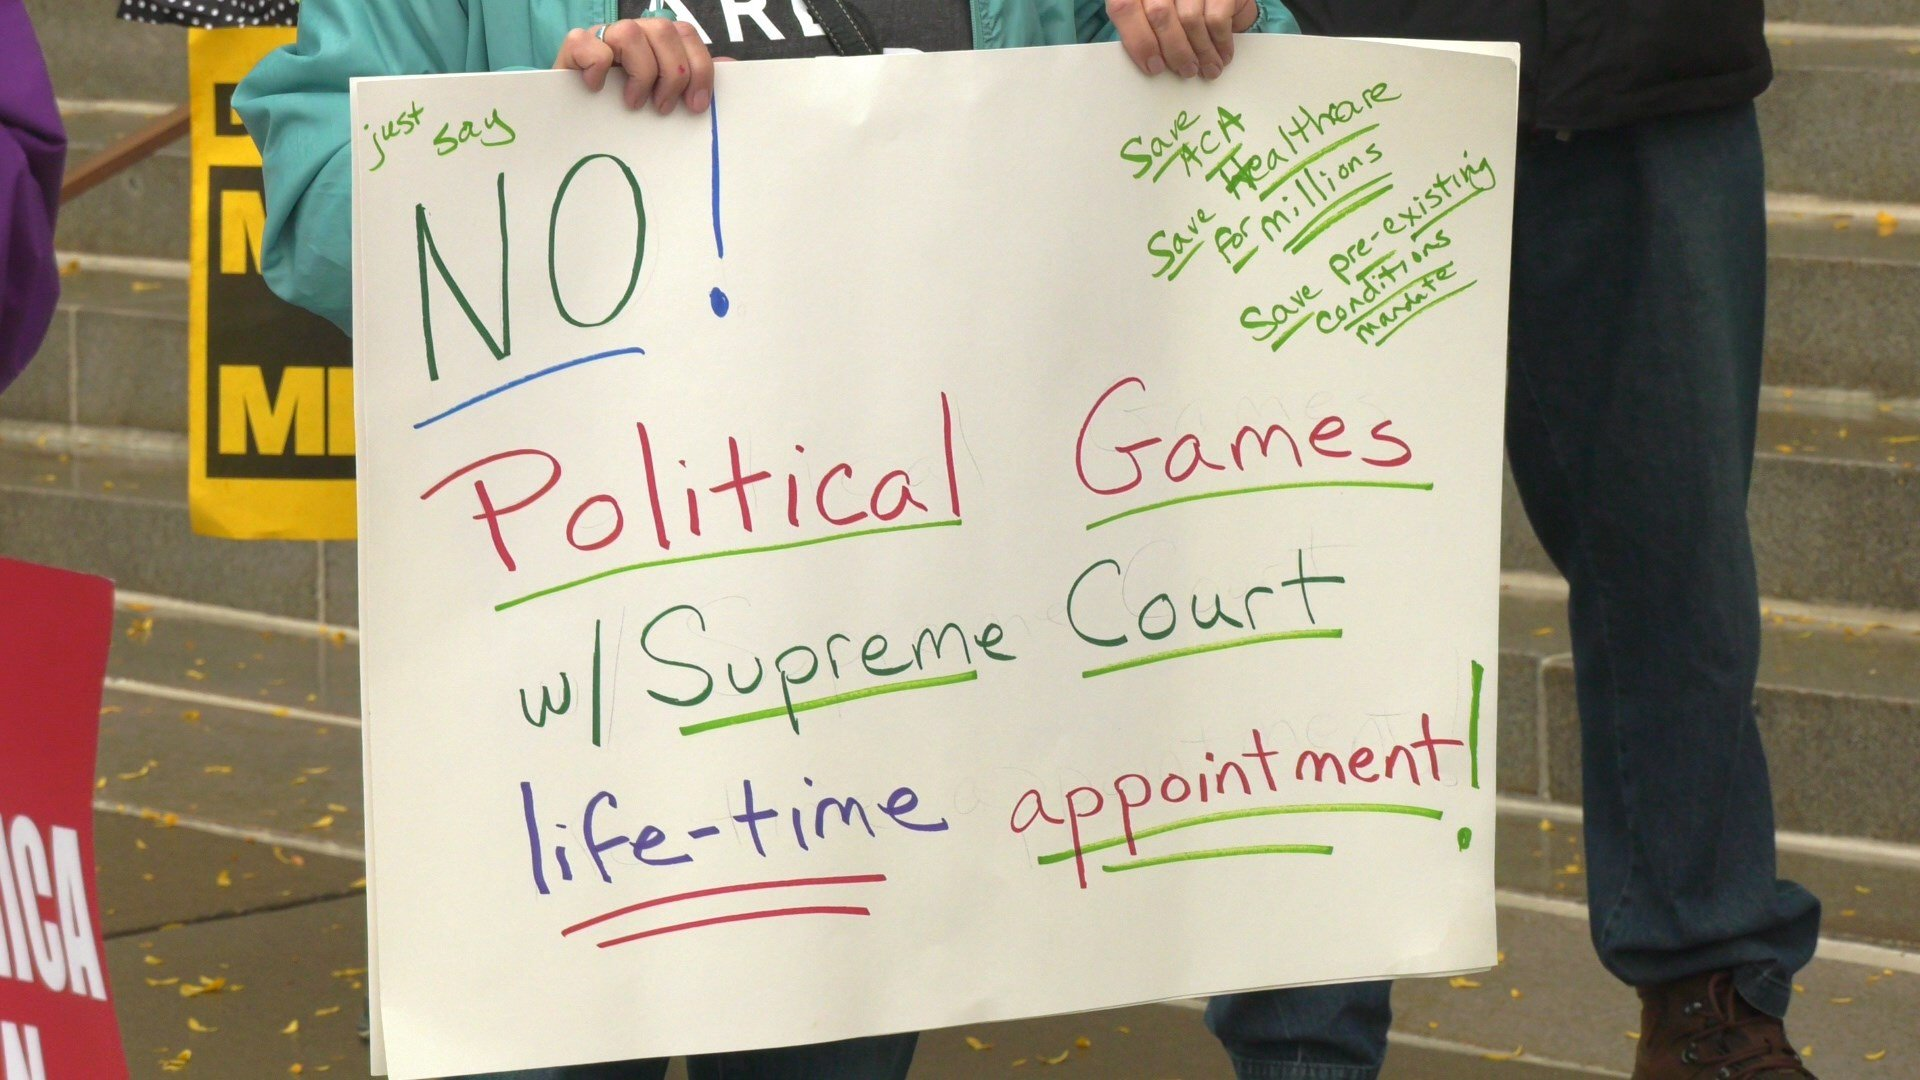 Activists Speak Out Against Rushing Supreme Court Nomination